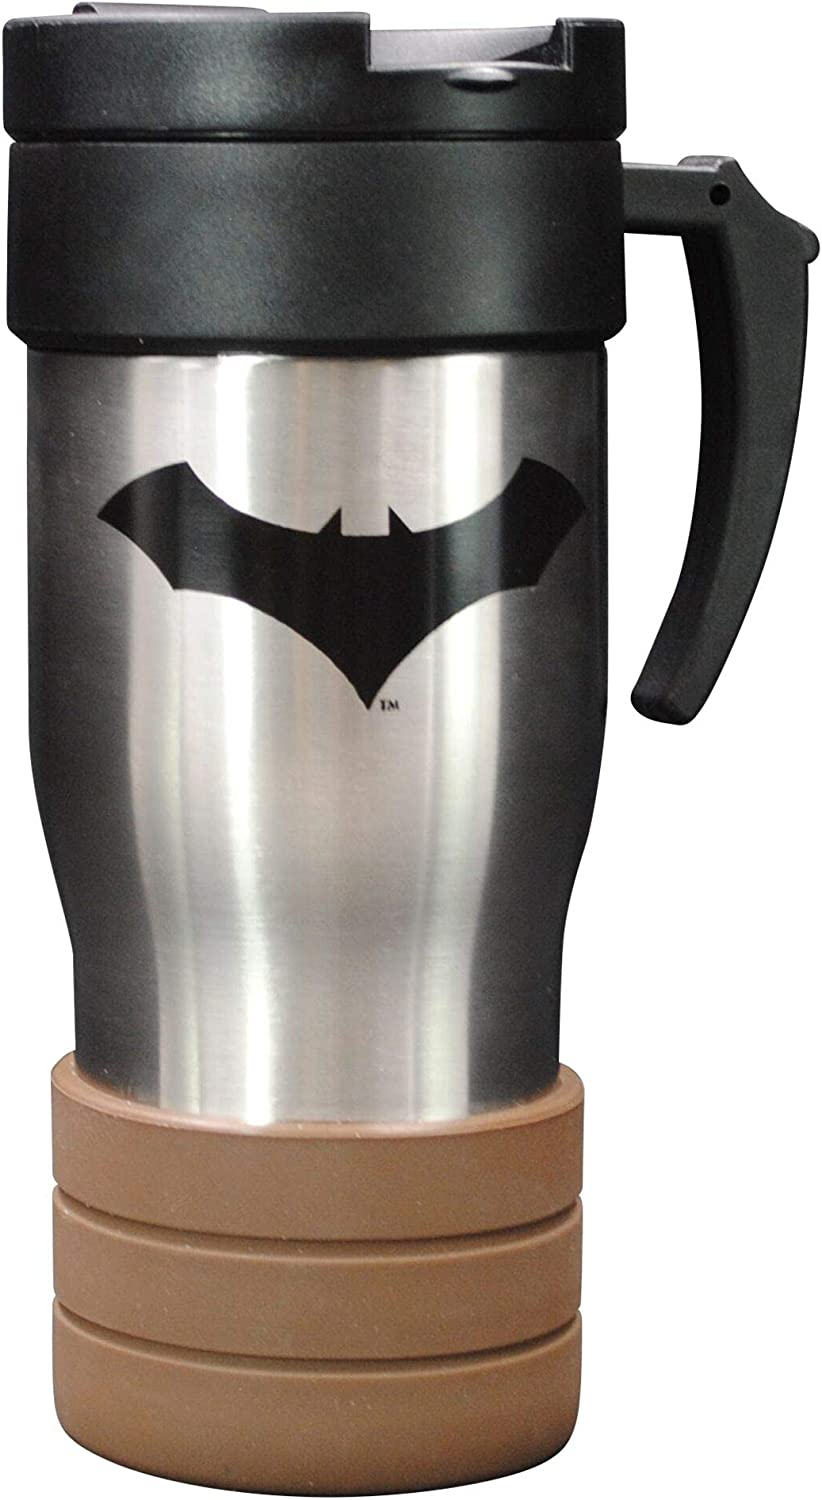 Batman Stainless Steel Travel Mug Insulated Hot Beverage Cup with Handle